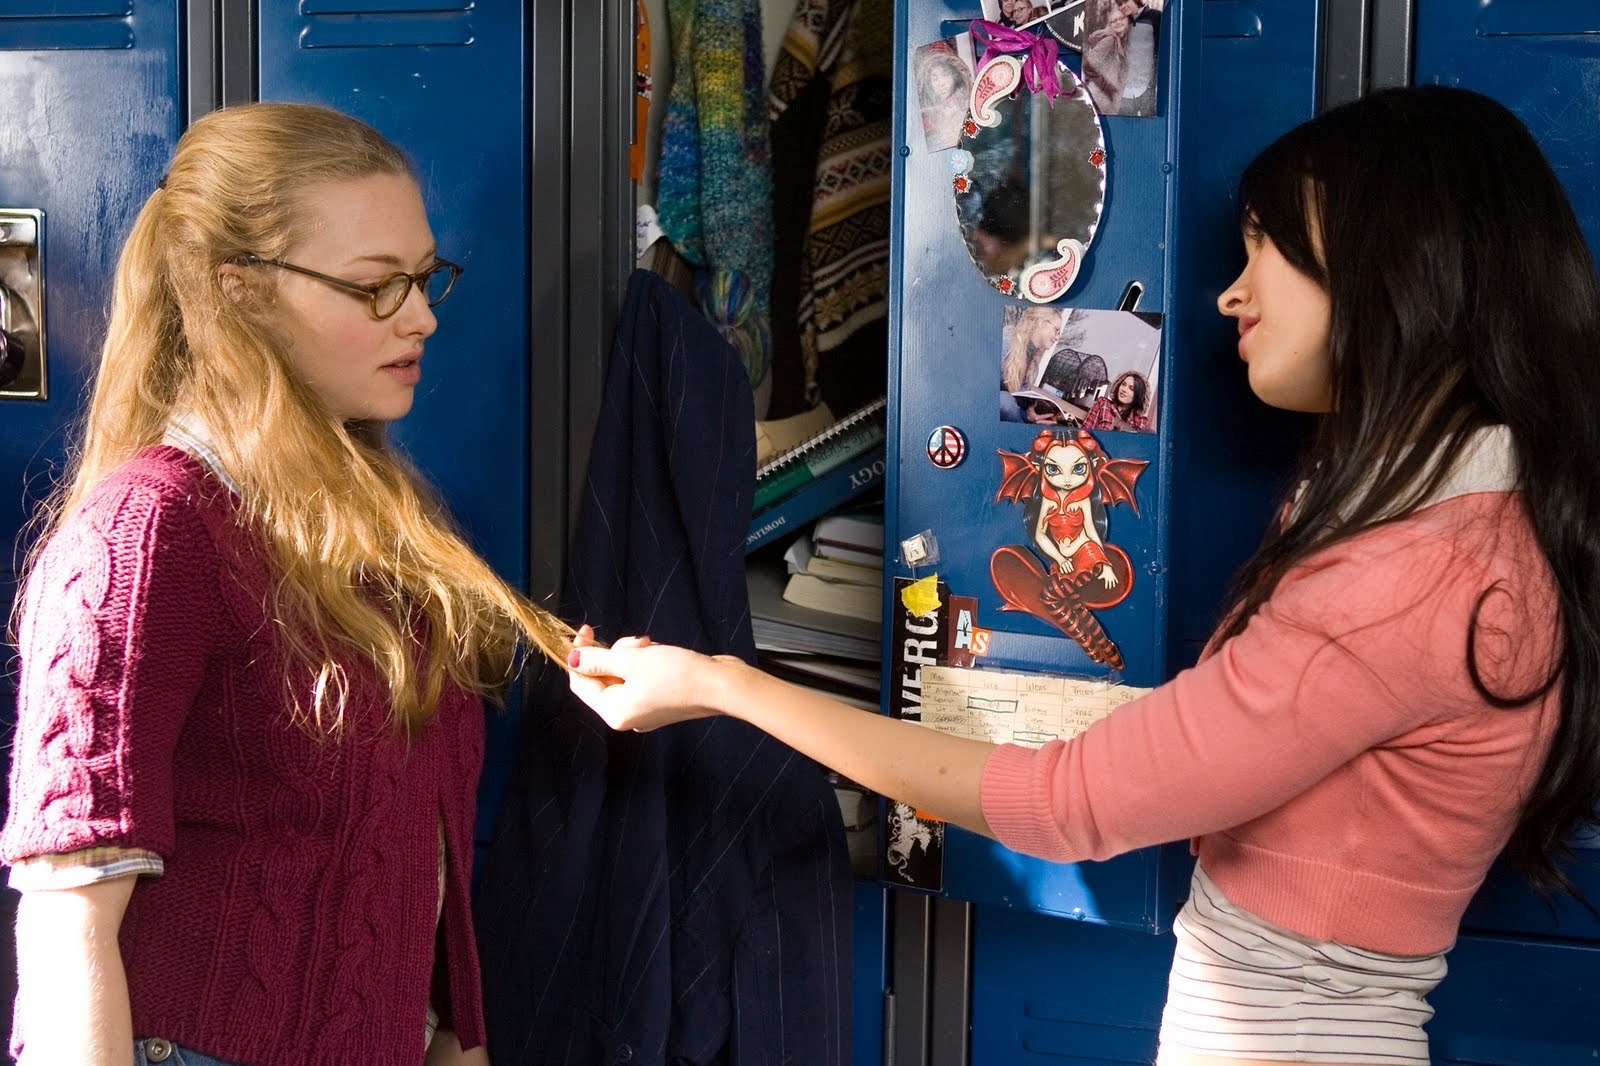 Jennifer and Needy in front of their school lockers. Jennifer is pulling a strand of Needy's hair